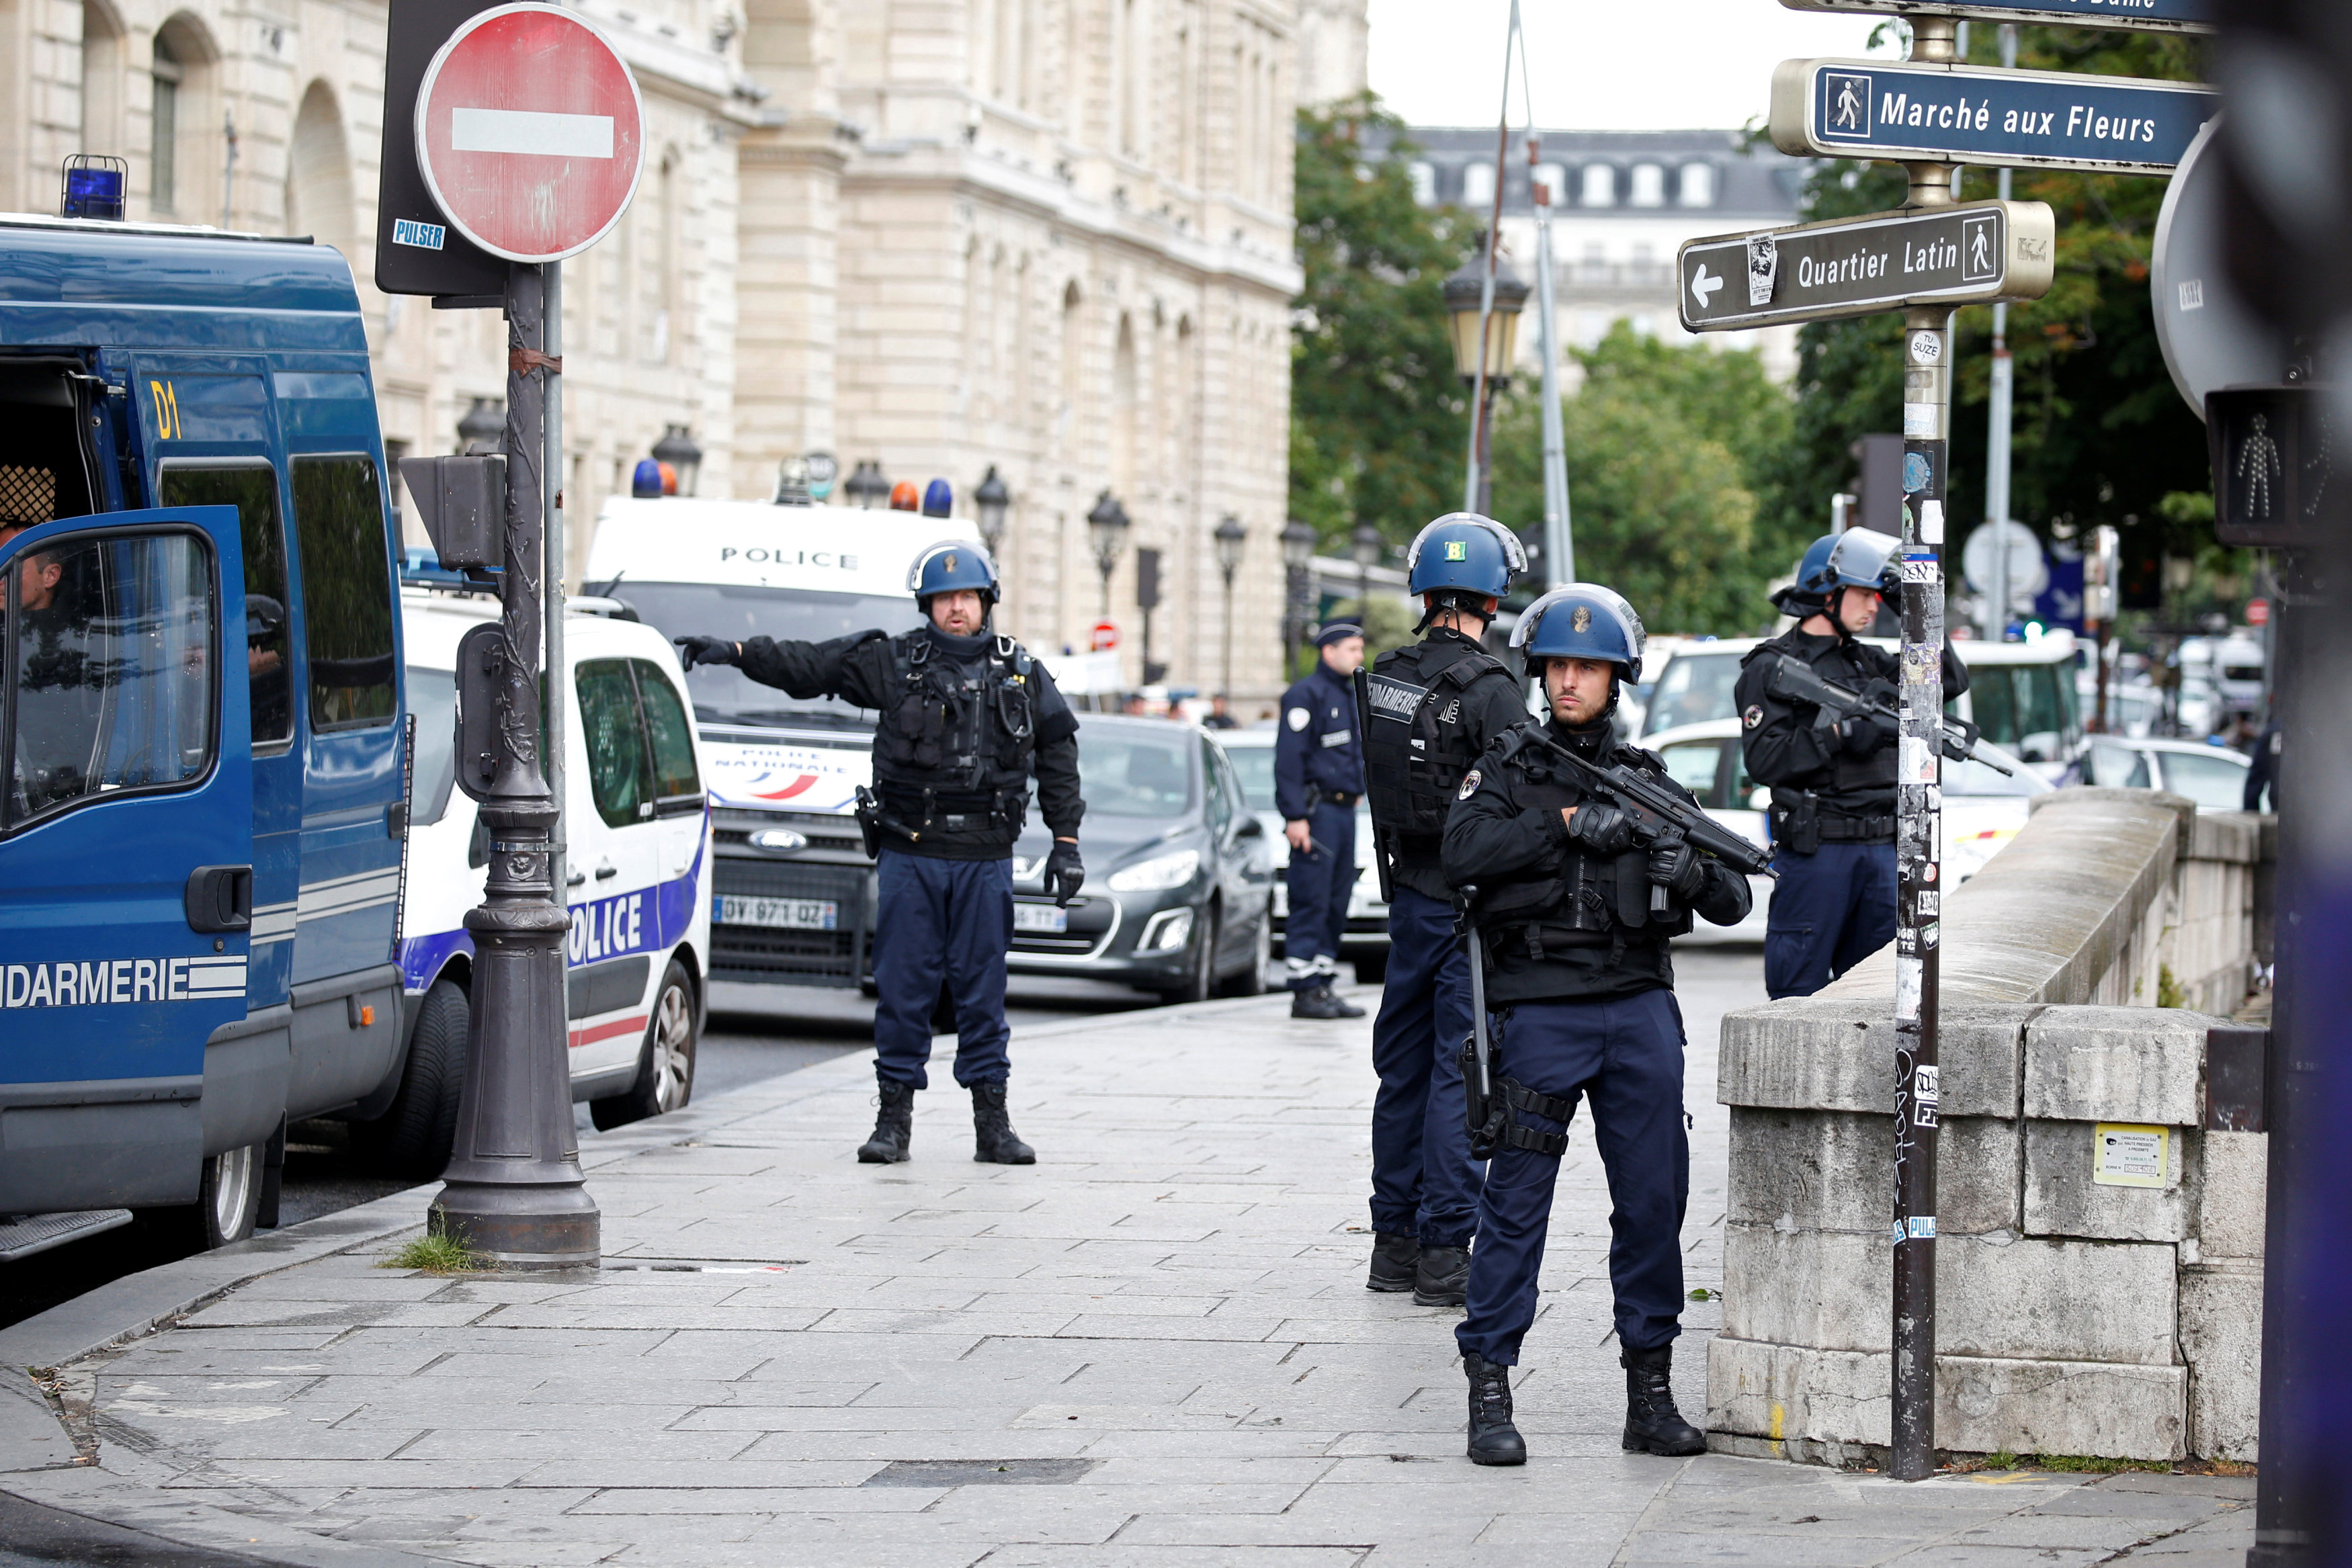 French gendarmes and police stand at the scene of a shooting incident near the Notre Dame Cathedral in Paris, France on June 6, 2017. (REUTERS/Charles Platiau)